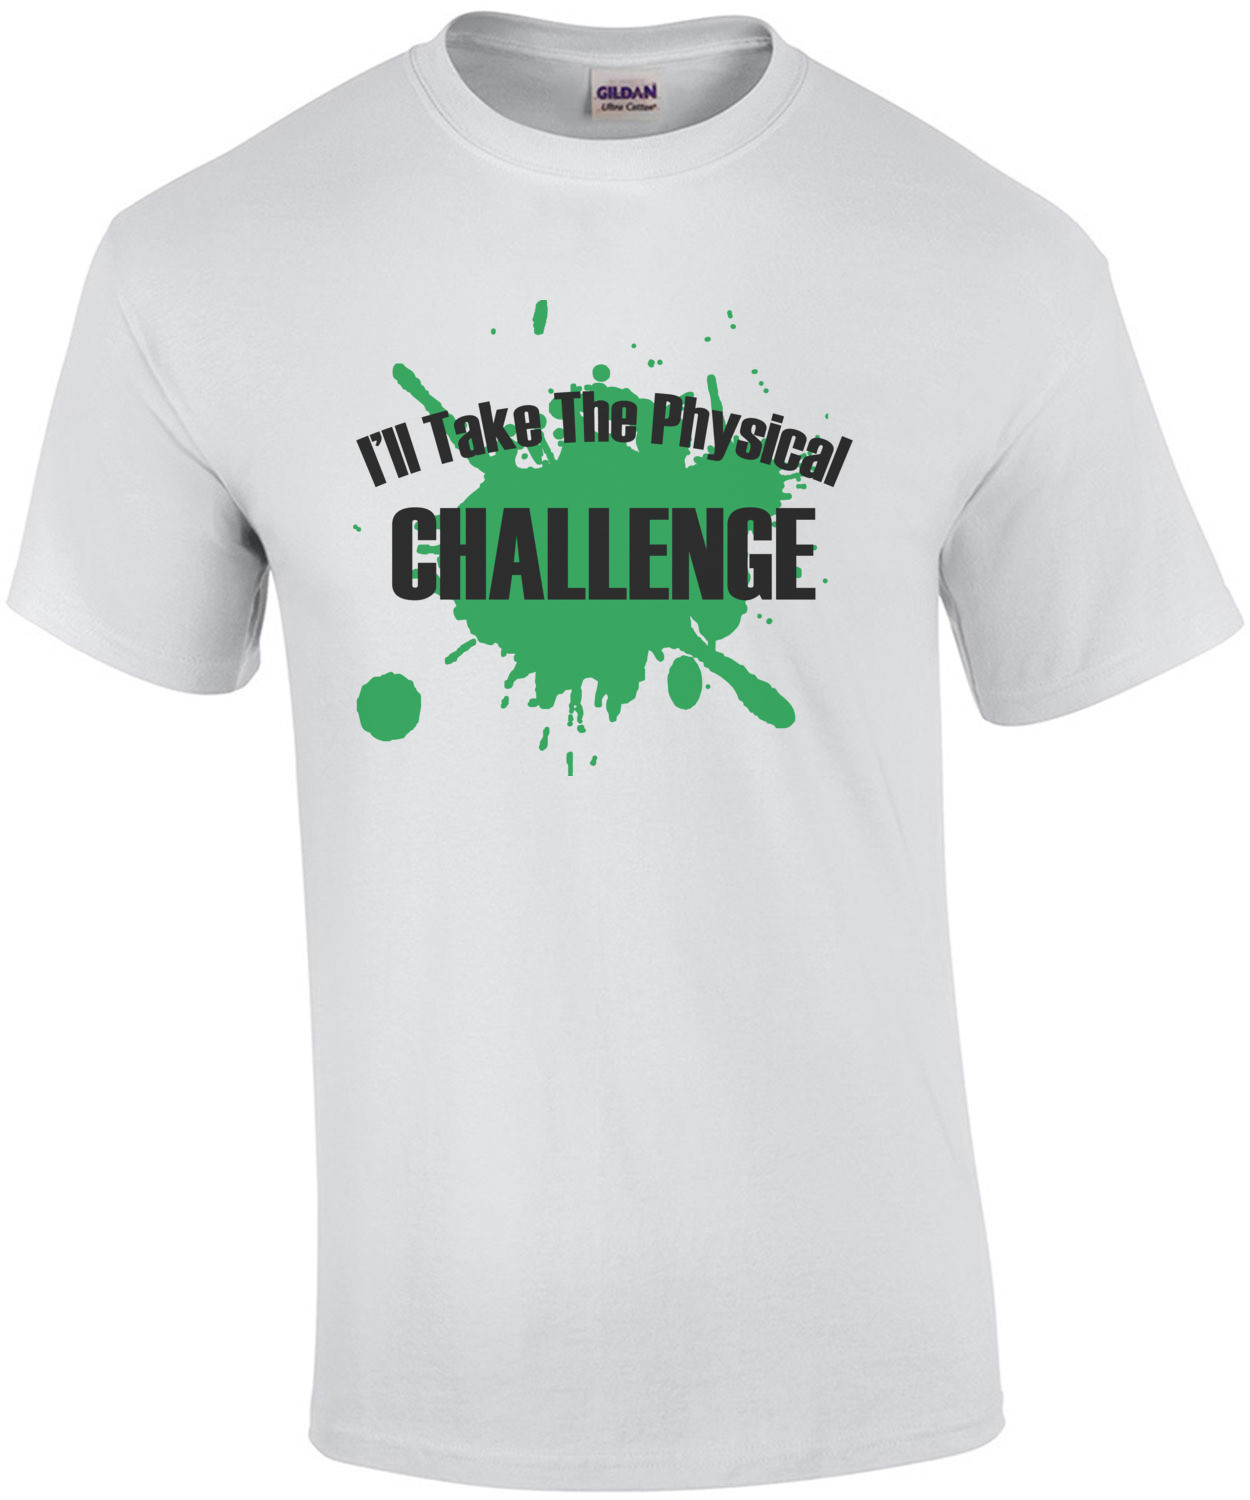 I'll take the physical challenge Double Dare